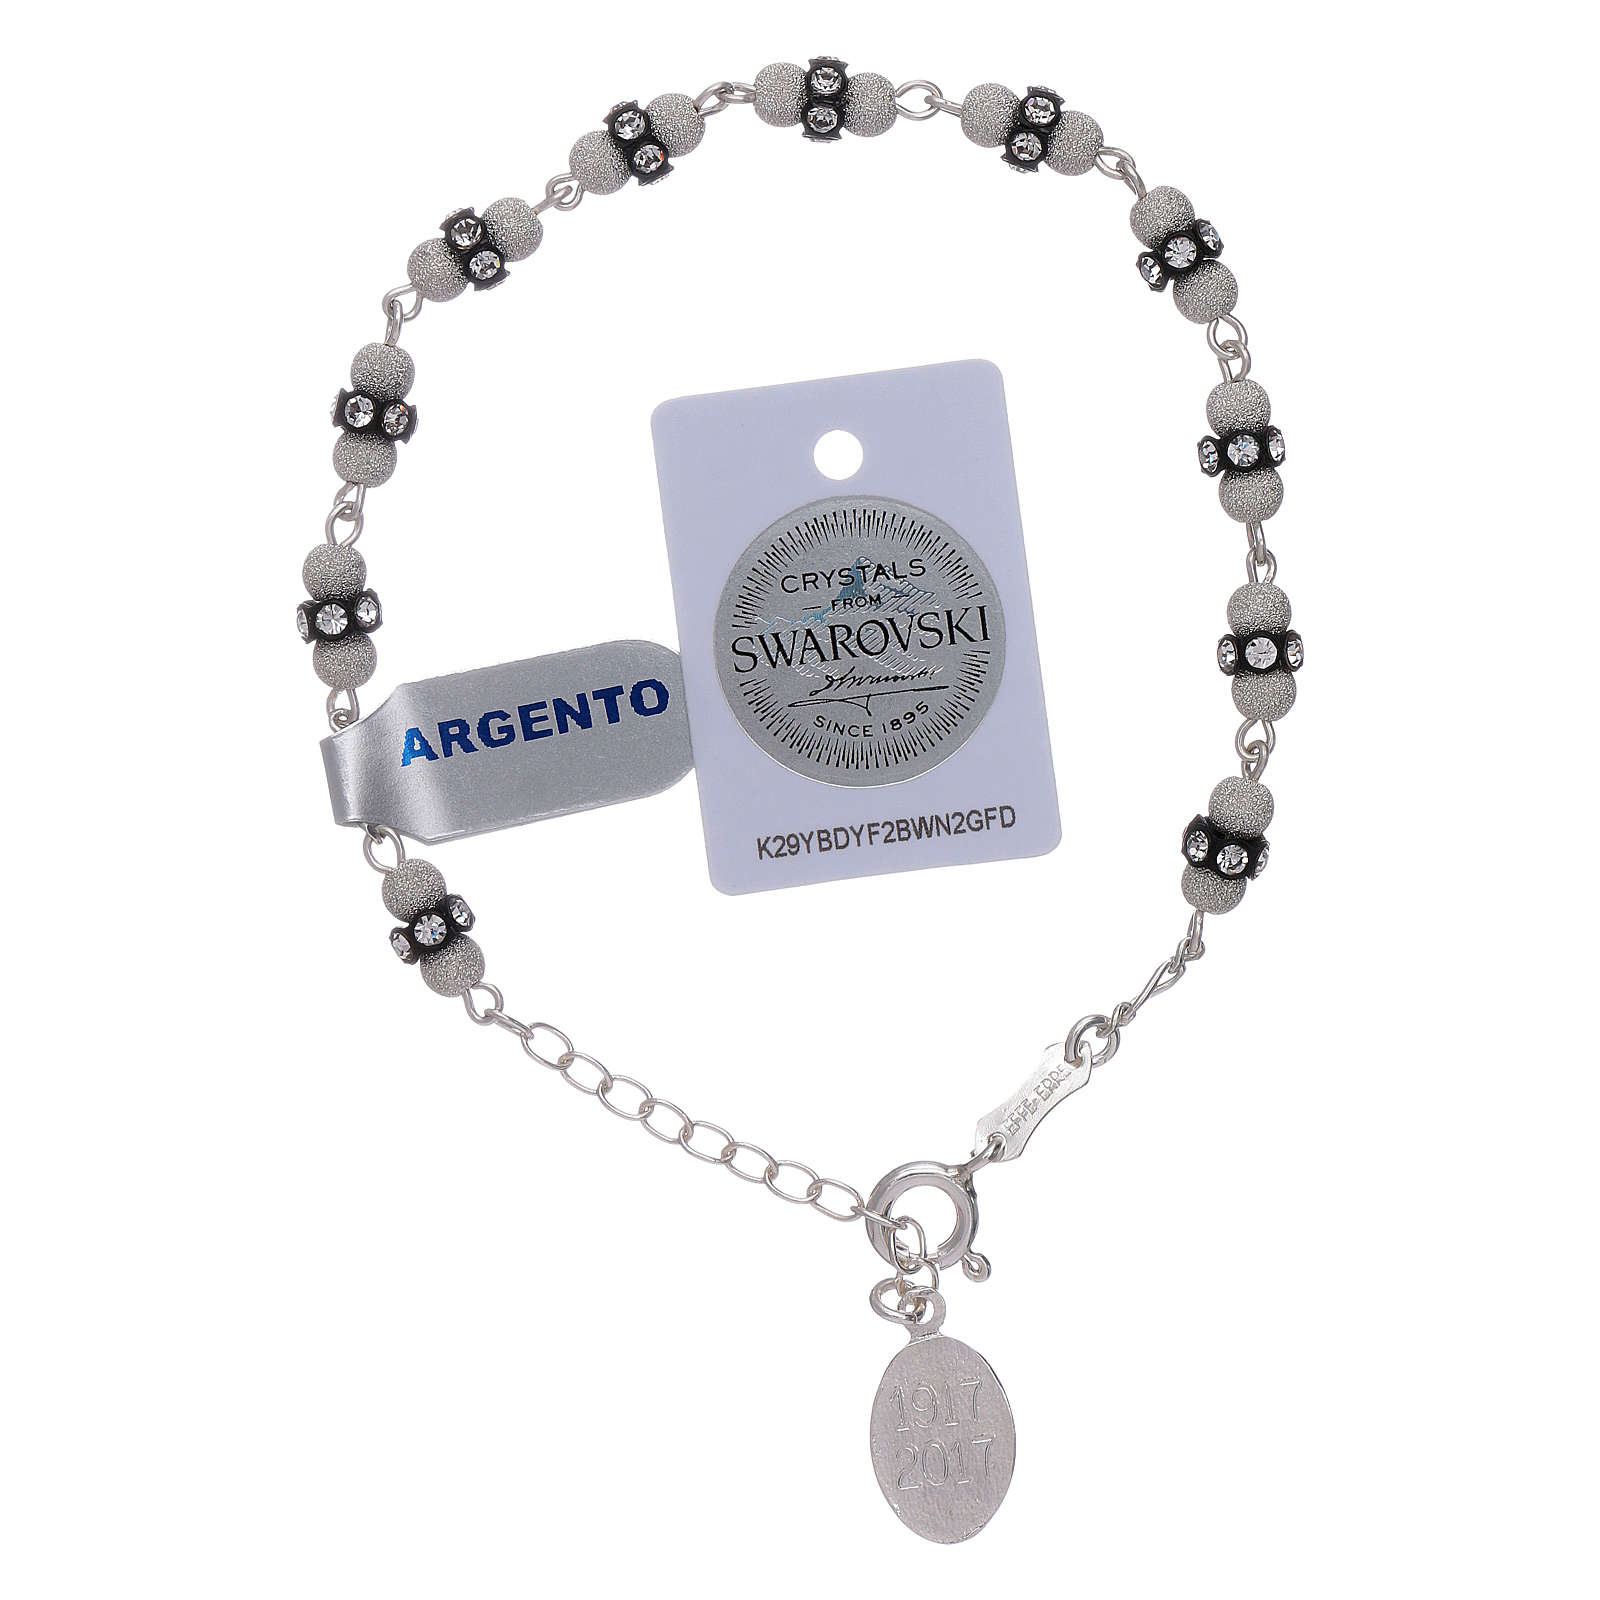 Our Lady of Fatima sterling silver bracelet, with Swarovski crystals 4